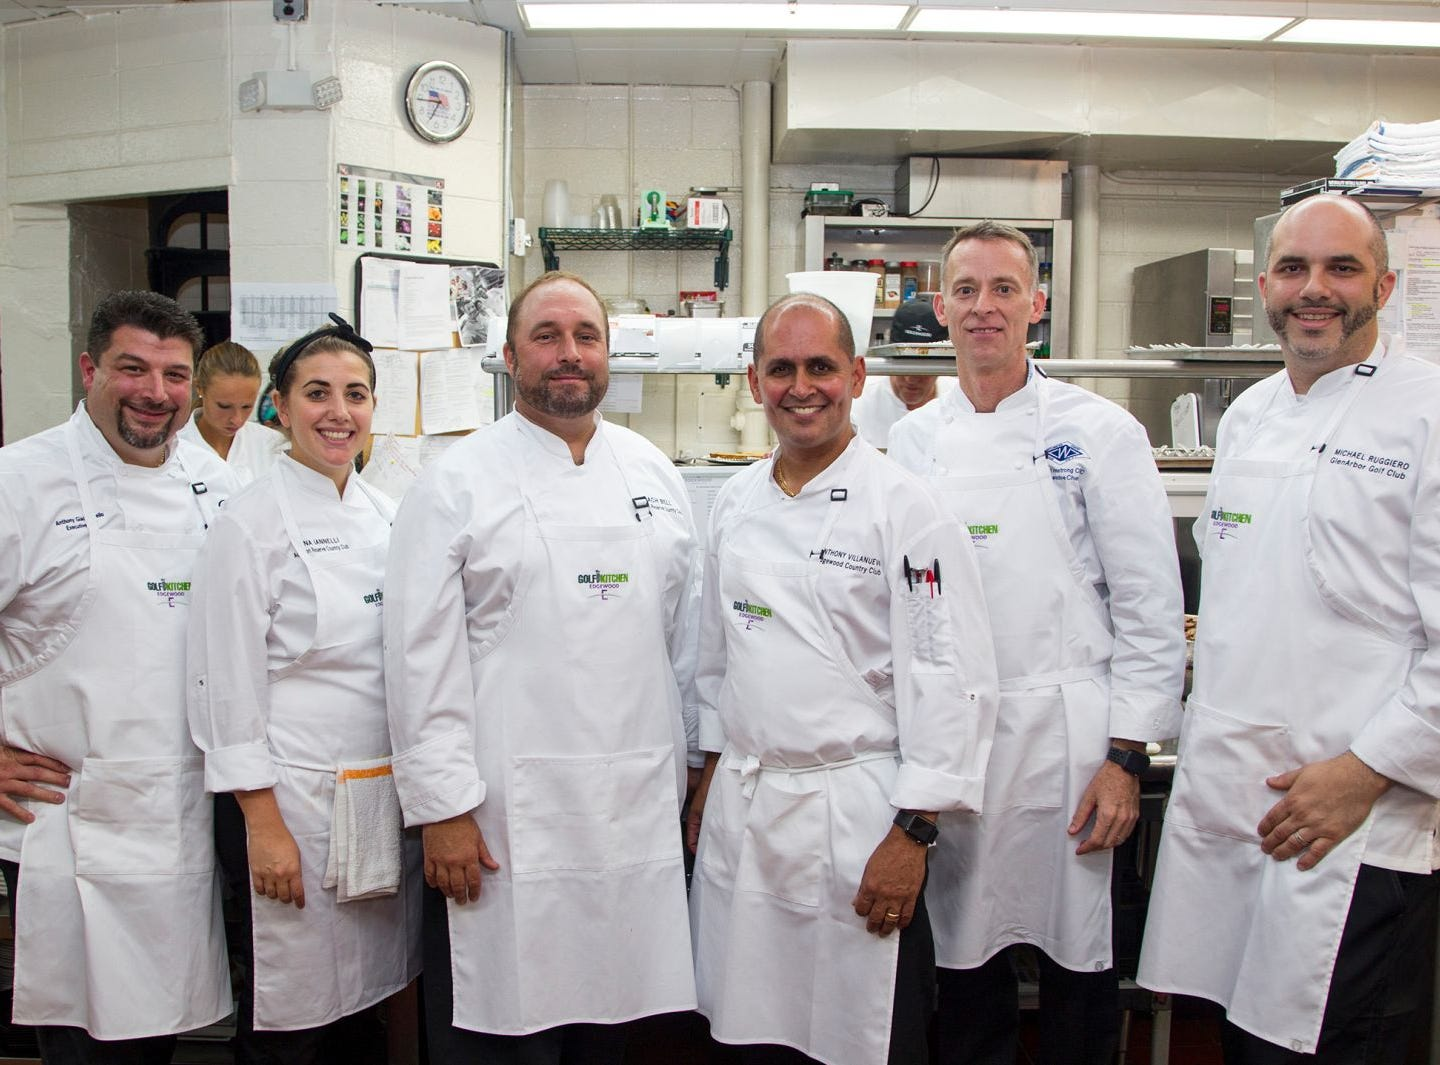 "Anthny Giacoponello, Dana Iannelli, Zach Bell, Anthony Villanuva,  Keith Armstrong, Michael Ruggiero. Edgewood Country Club, in partnership with Golf Kitchen magazine, host the ""Golf Kitchen/Edgewood Fine Dining Soirée and Golf Kitchen Culinary Excellence Awards."" 10/04/2018"